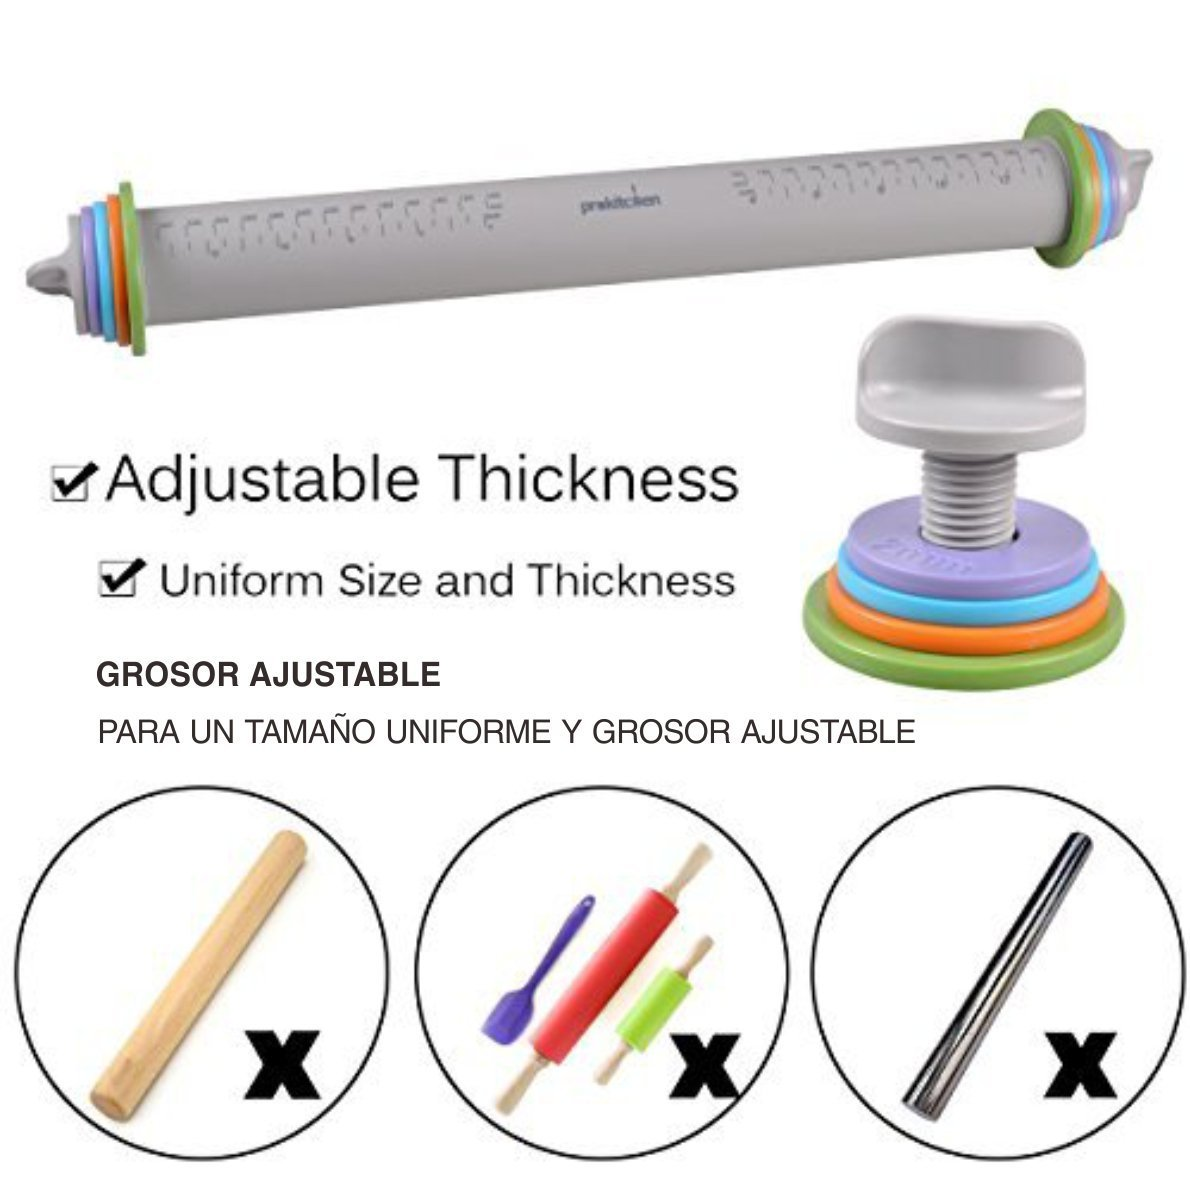 PROKITCHEN Adjustable Silicone Rolling Pin Dough Roller with Removable Thickness Rings Guides for Baking Dough Pizza Pie Cookies by PROKITCHEN (Image #3)